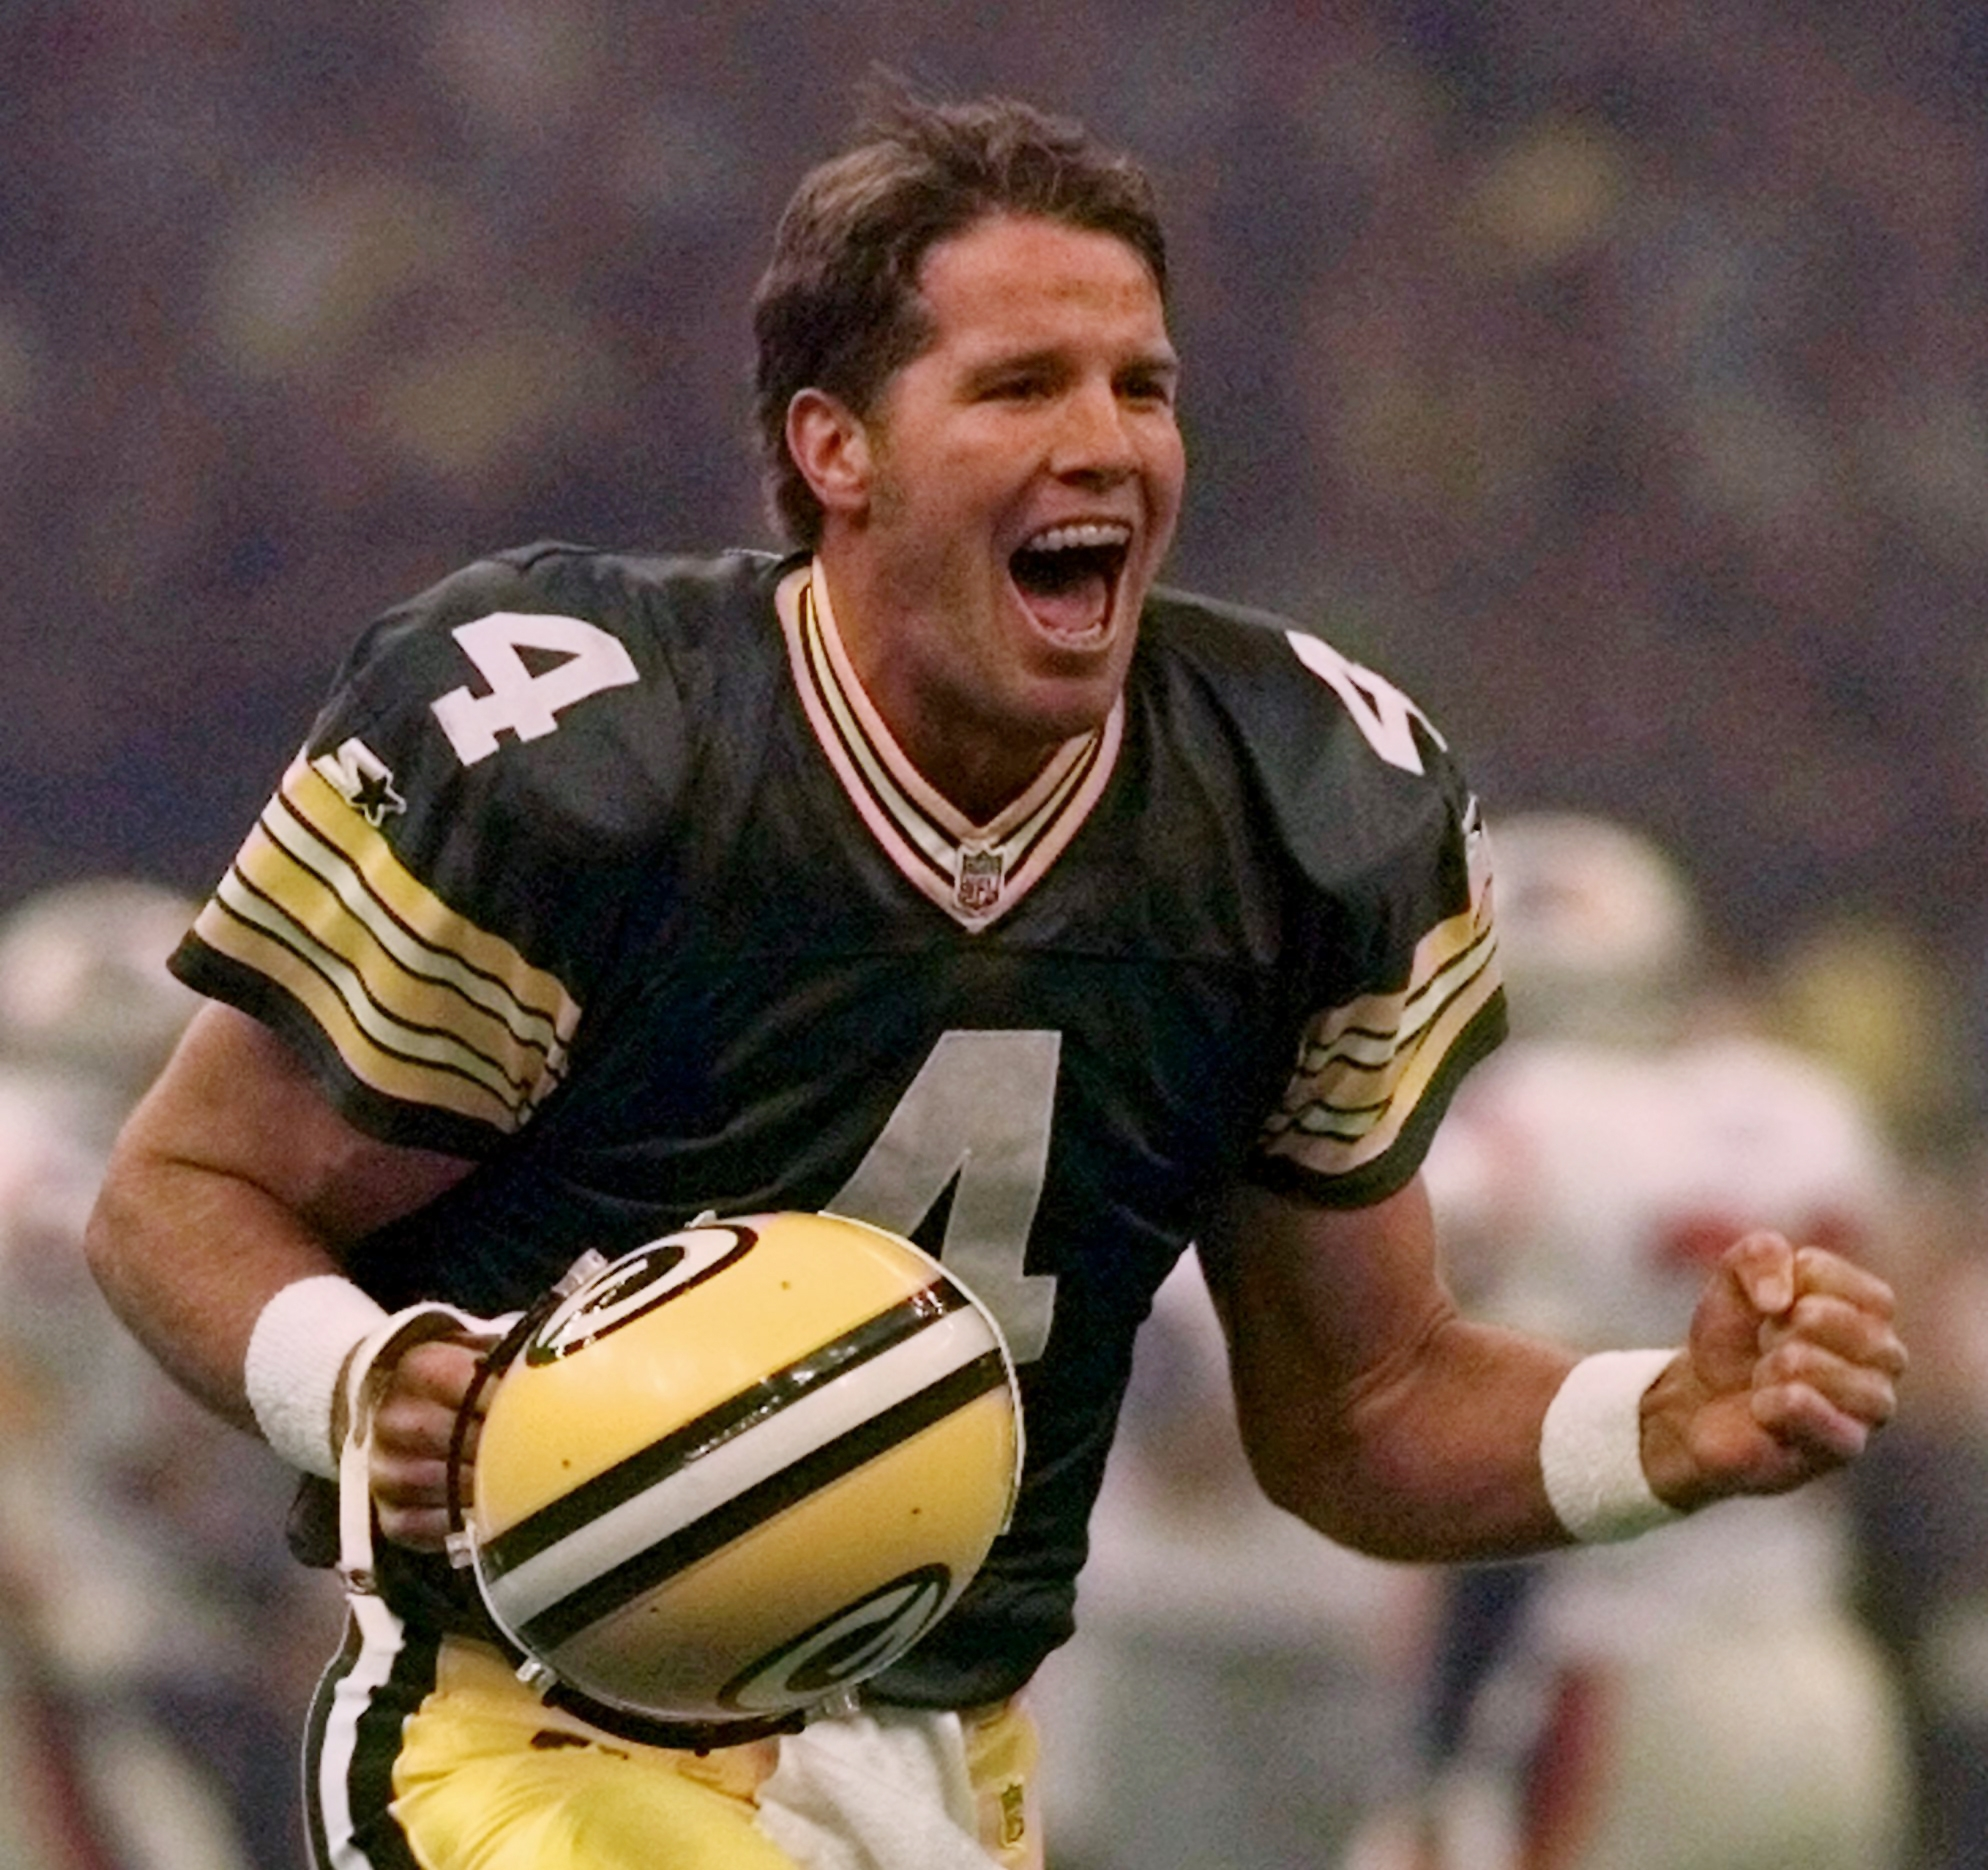 FILE - In this Jan. 26, 1997, file photo, Green Bay Packers quarterback Brett Favre celebrates after throwing a touchdown pass to Andre Rison during the Super Bowl in New Orleans. Favre is a semifinalist for the Pro Football Hall of Fame in his first year